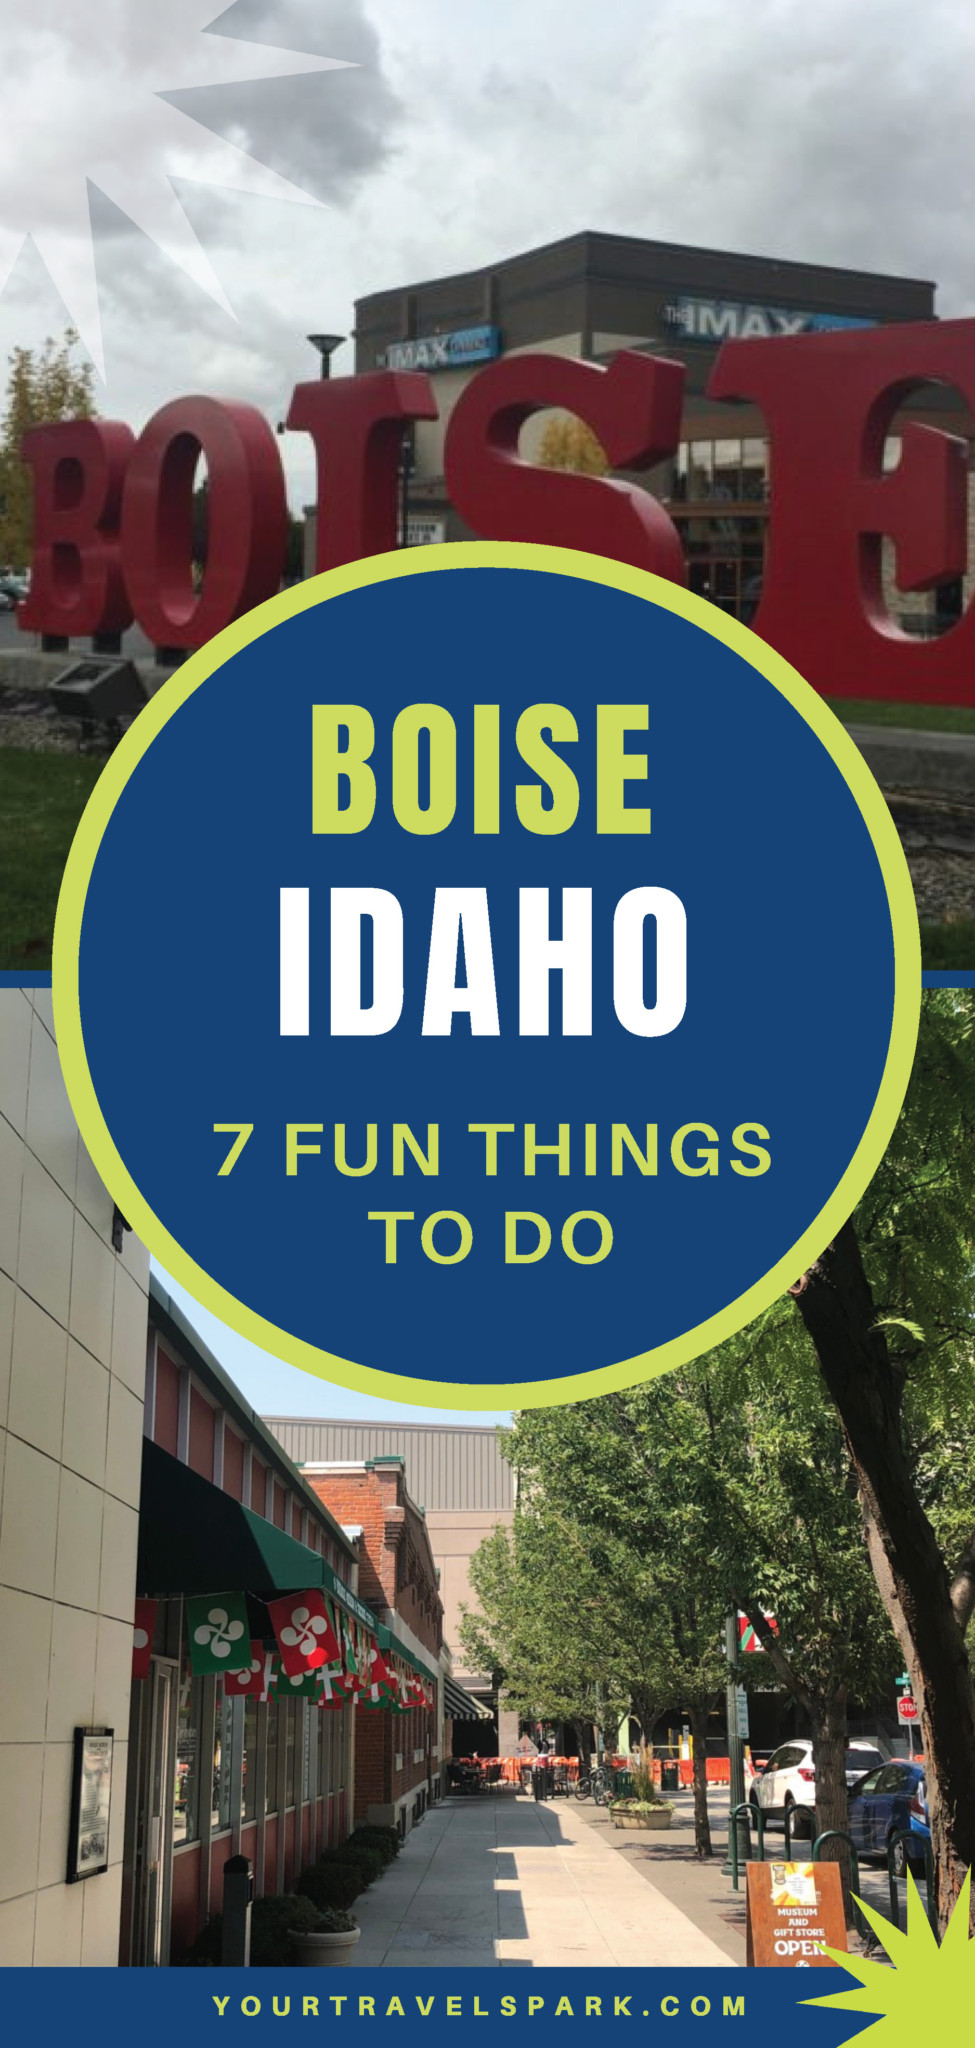 Boise, Idaho is becoming a great destination to visit - whether it be for skiing, breweries, or nightlife. Here are our favorite places to stay and things to do in Boise, Idaho. #boise #idaho #boiseidaho #boiseid #potatoes #placestostay #placestostayinboise #lesbois #cityoftrees #basque #basqueblock